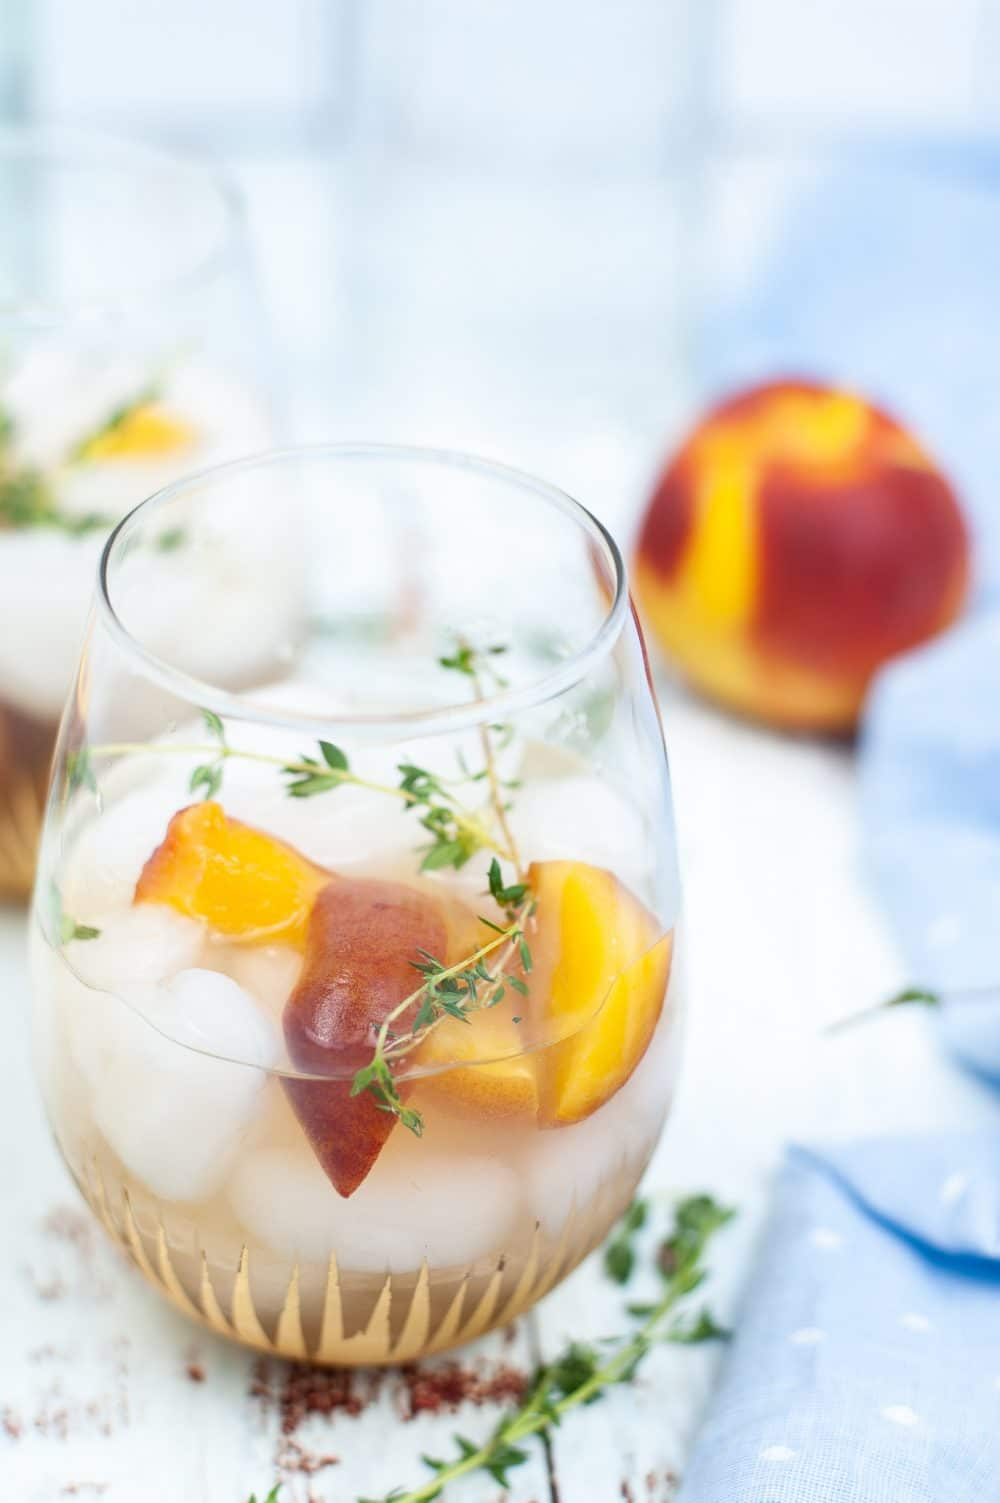 Peach gin cocktail in a glass dressed with peach wedges and thyme sprigs